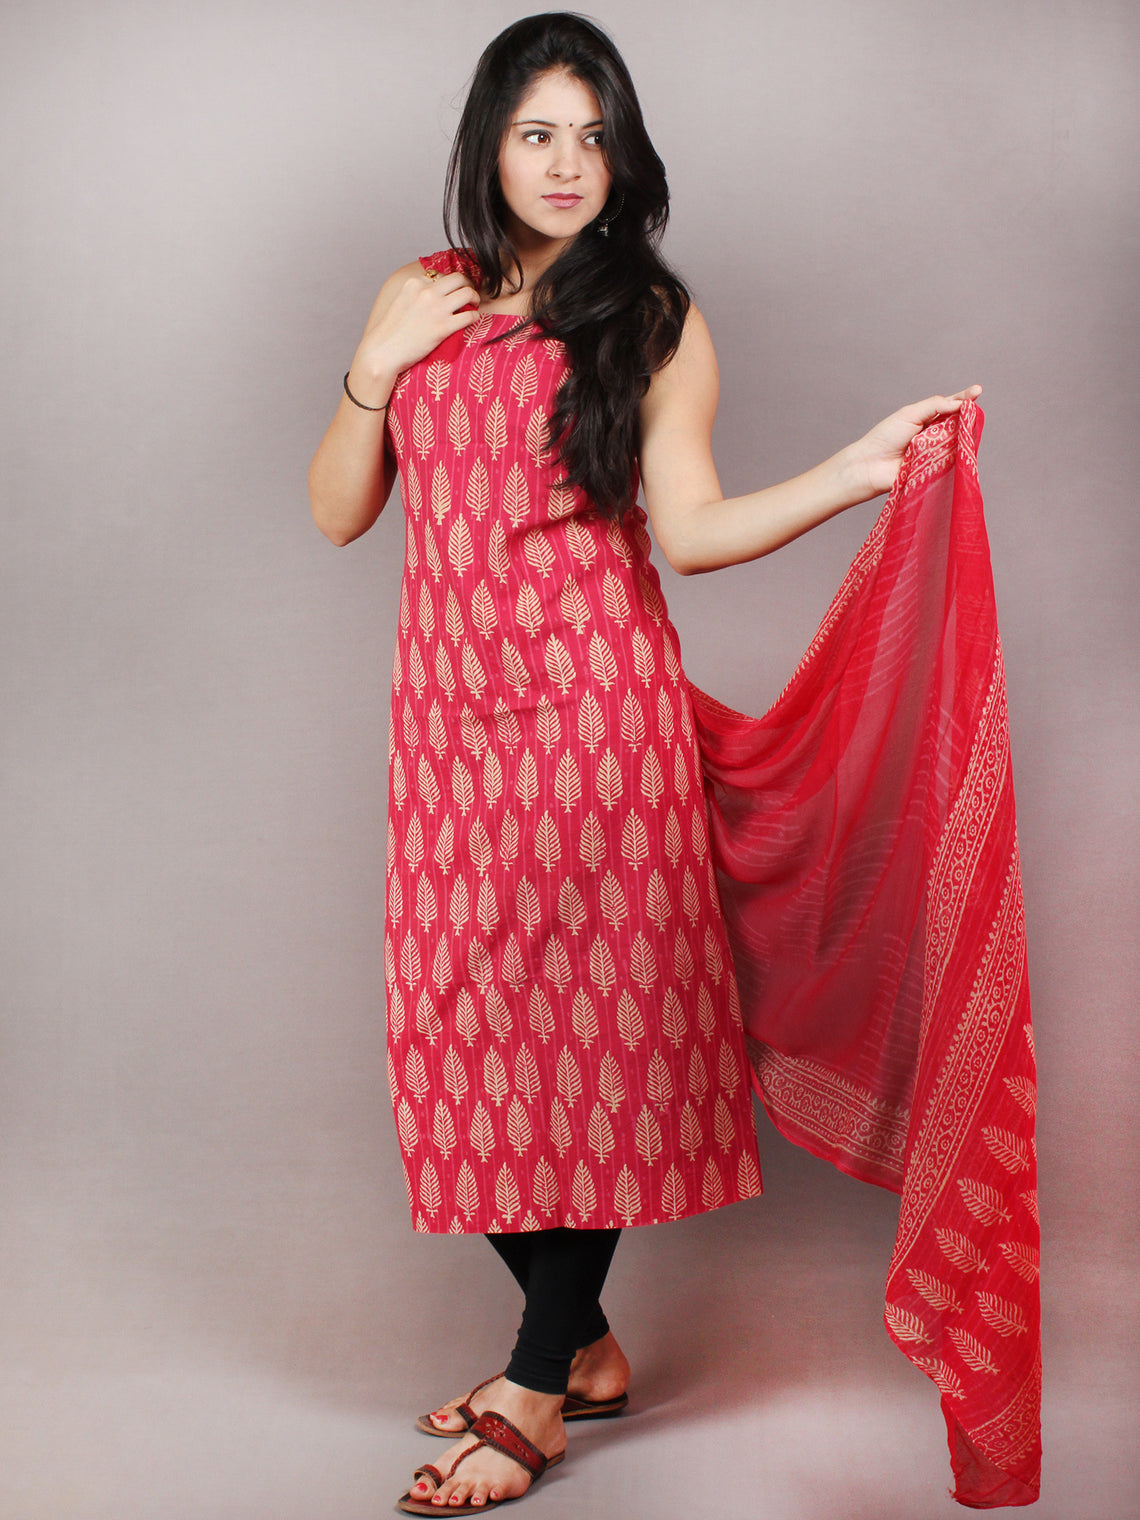 Rose Pink Beige Hand Block Printed Cotton Suit-Salwar Fabric With Chiffon Dupatta - S1628078